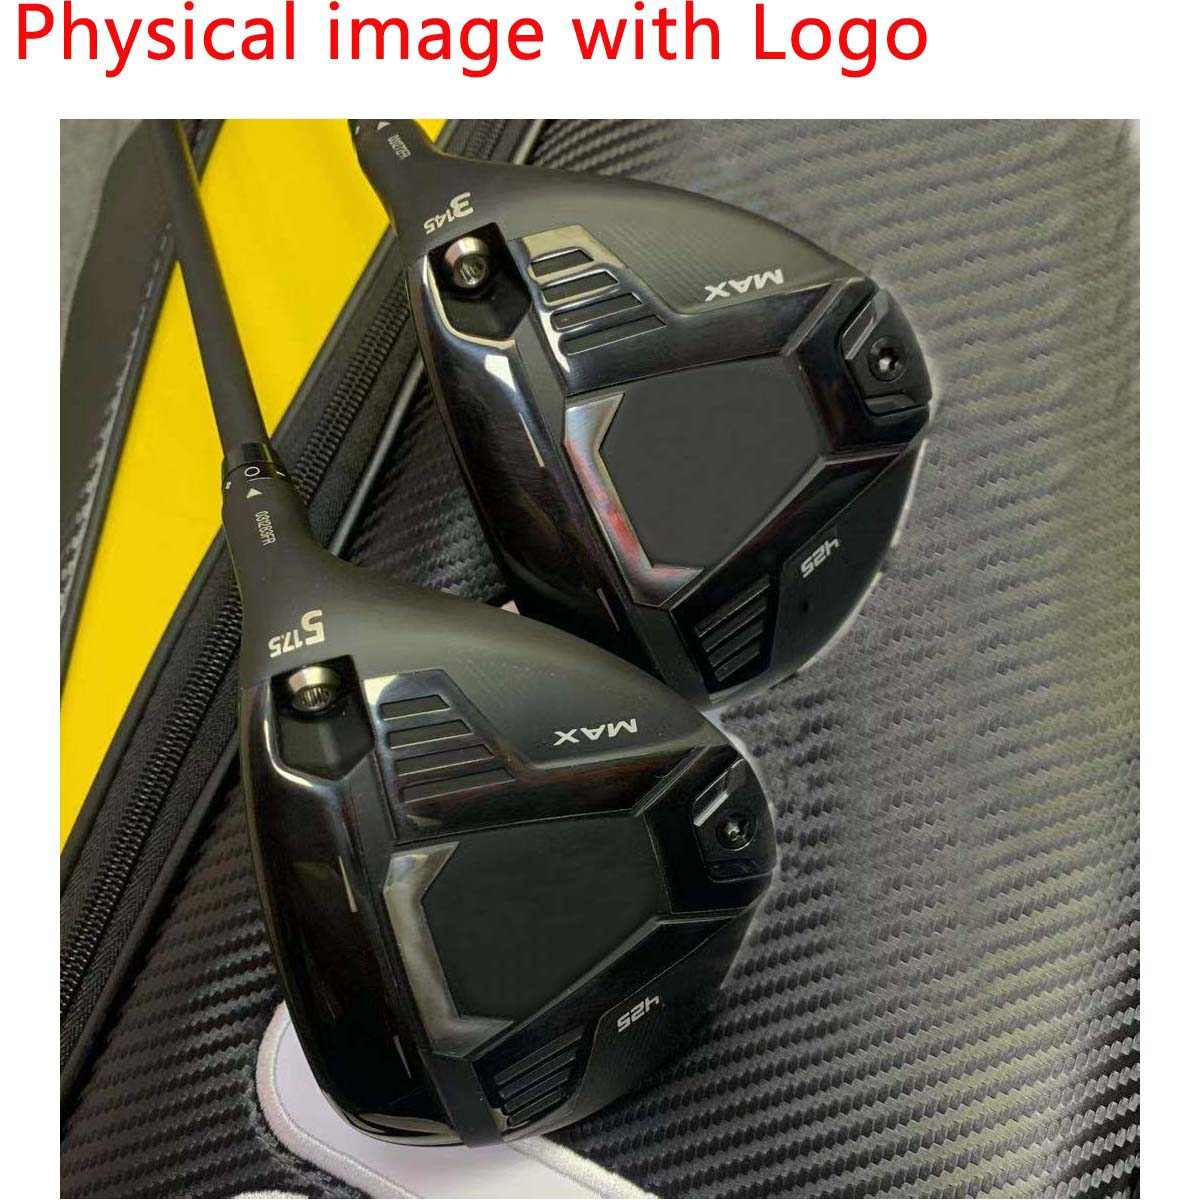 Golf Club 425 New Fairway Wood Tee Wood No. 3 No. 5 Delivery Hat Cover Golf Club with Logo